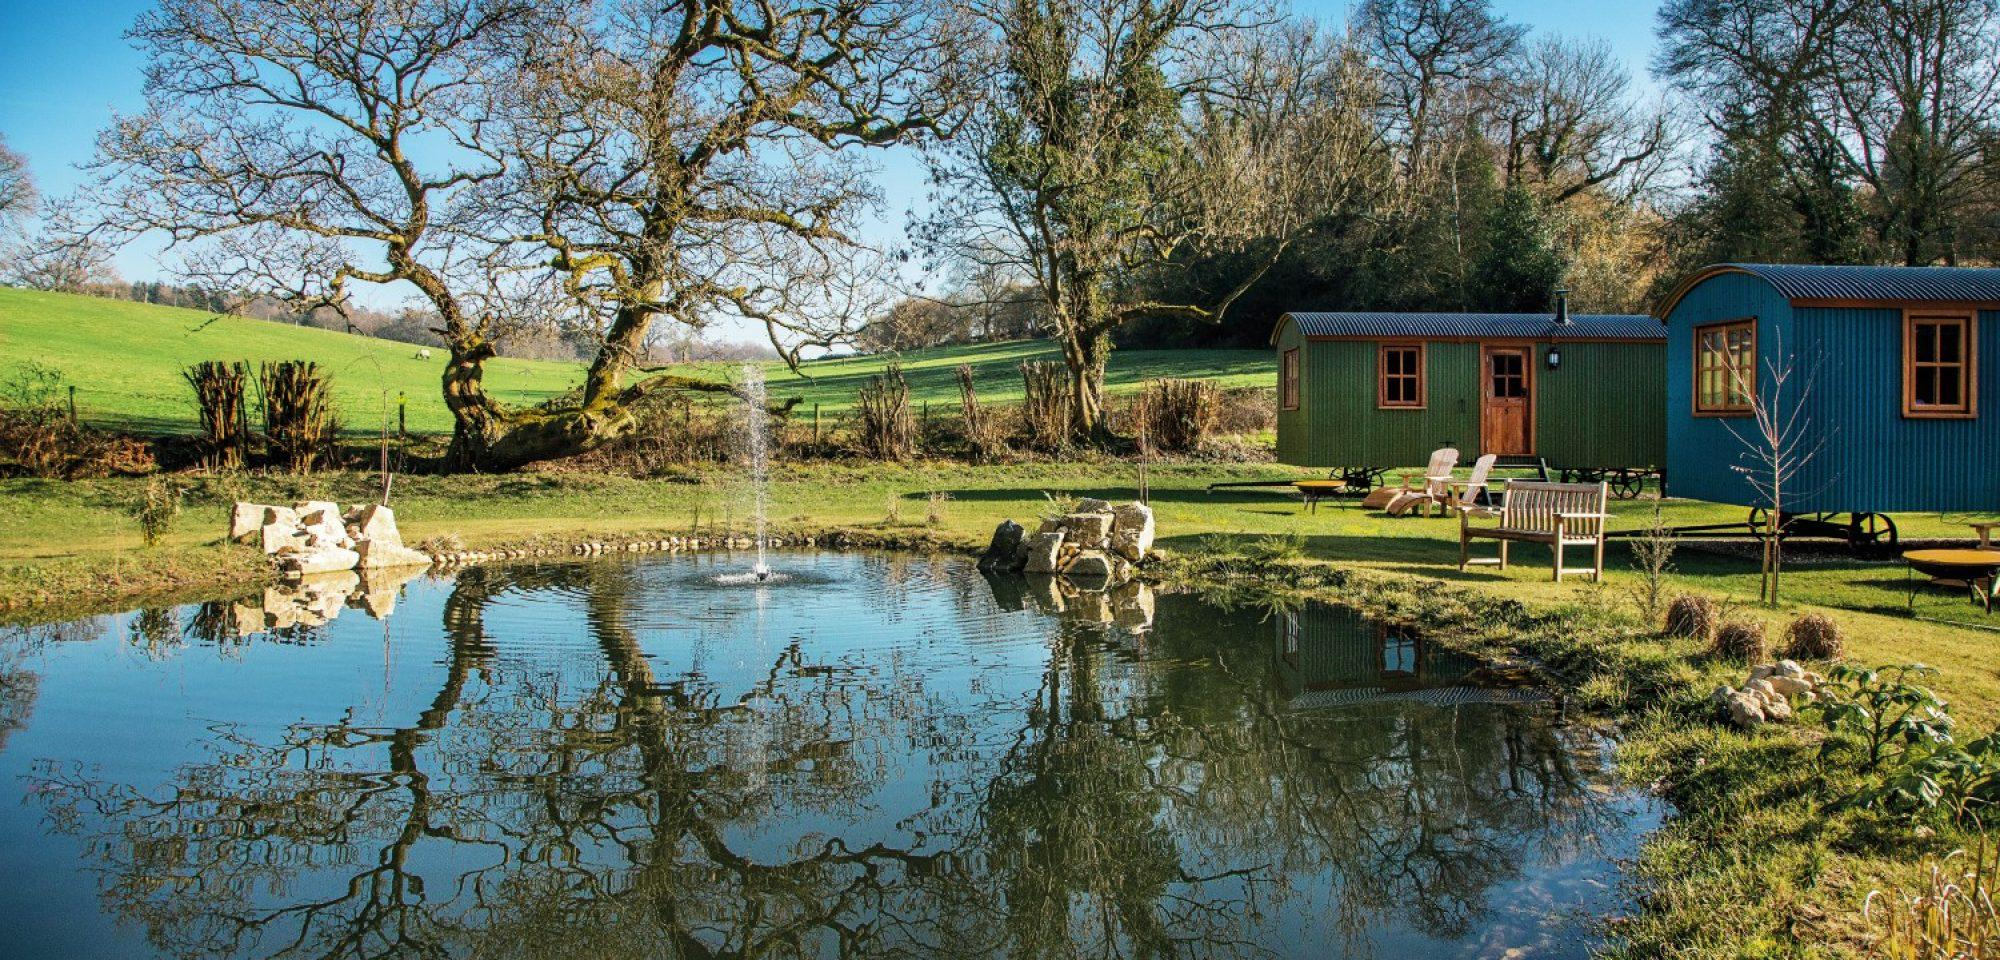 Campsites in South East England holidays at Cool Places